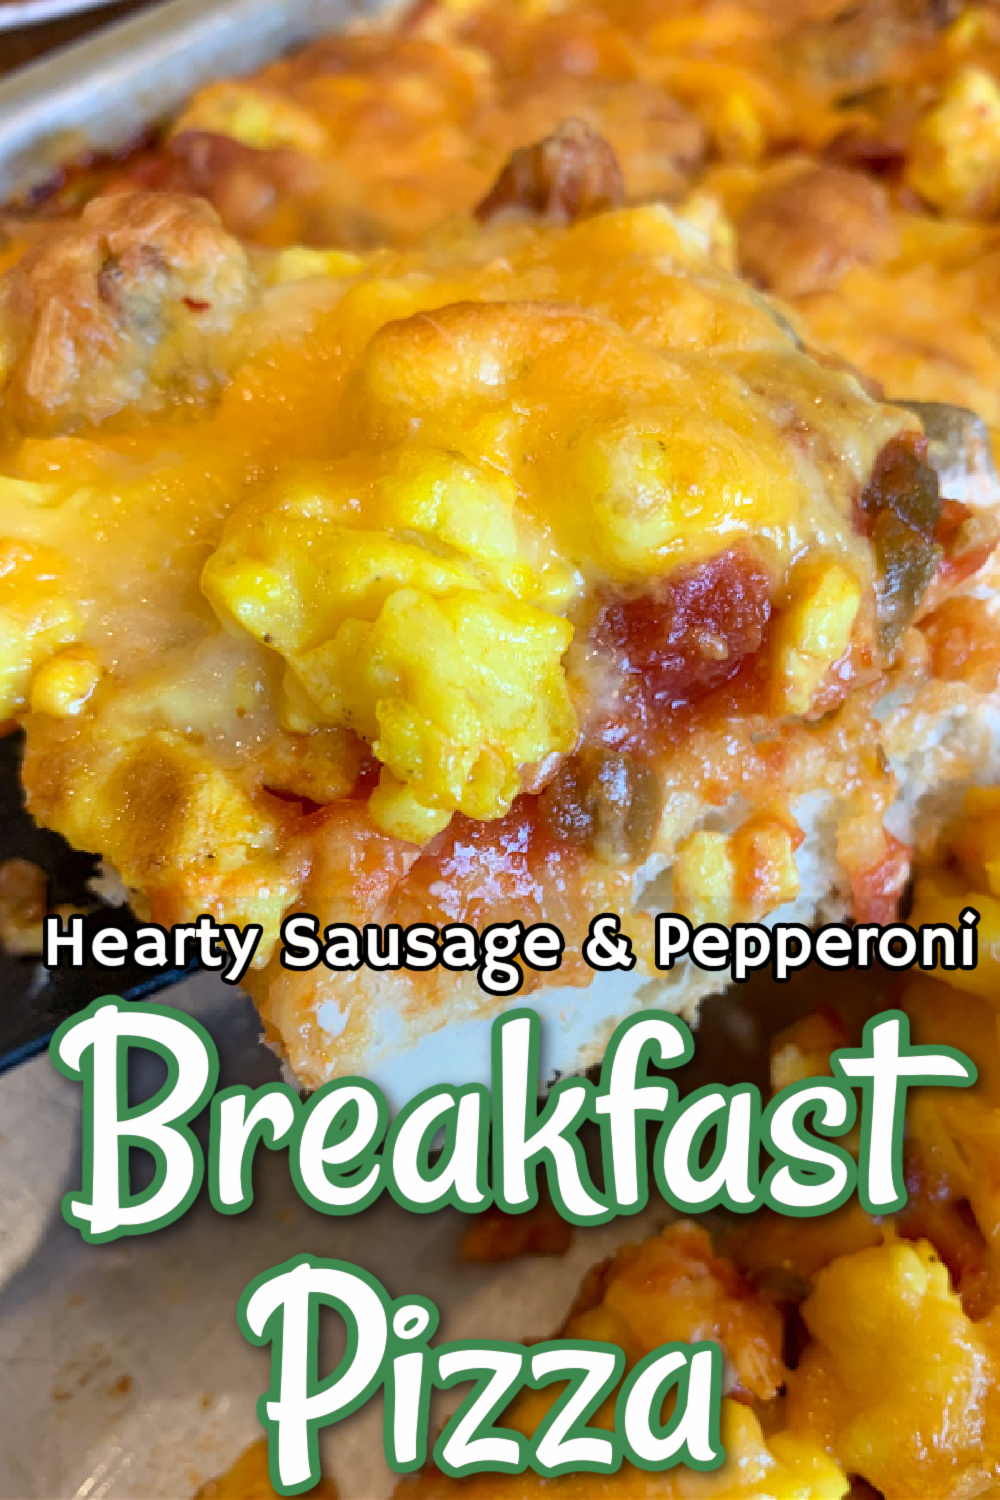 Hearty Sausage & Pepperoni Breakfast Pizza